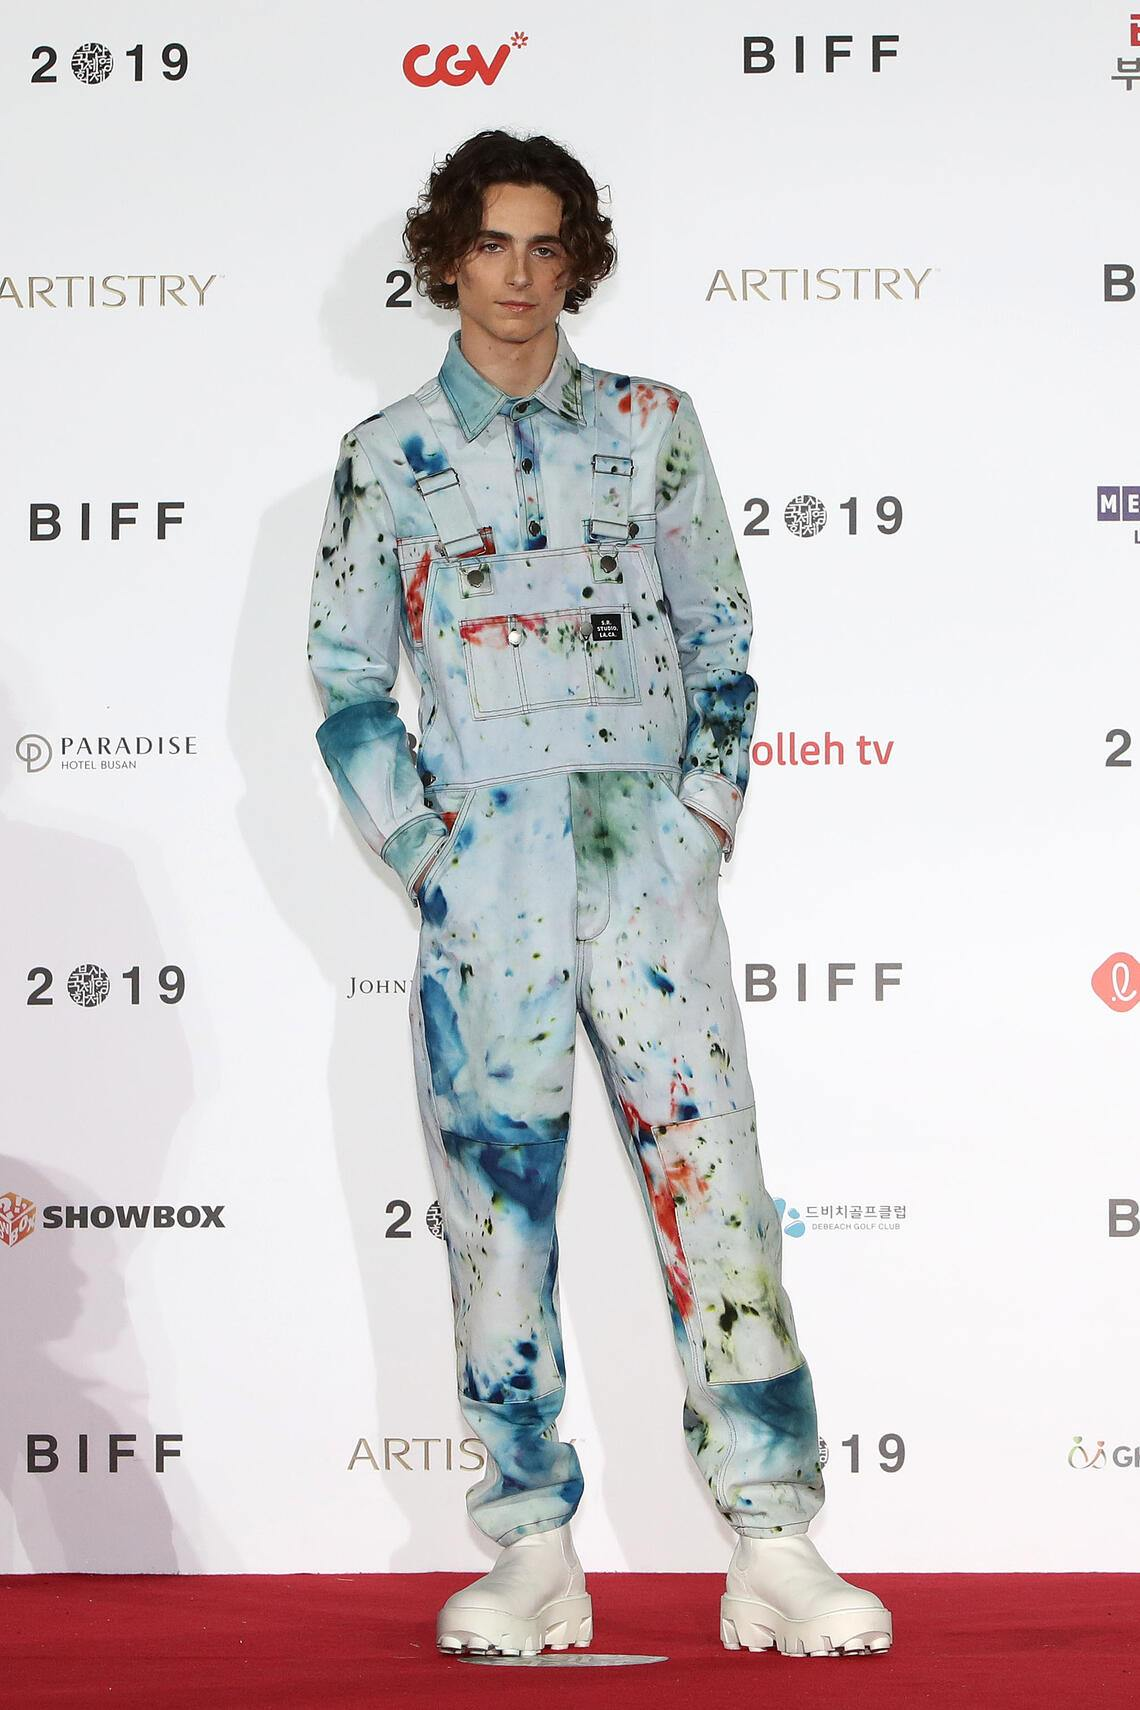 BUSAN, SOUTH KOREA - OCTOBER 08: Actor Timothee Chalamet attends the photo call at the red carpet for the 'The King' at the Busan Cinema Center during the day six of the 24th Busan International Film Festival on October 08, 2019 in Busan, South Korea. (Photo by Chung Sung-Jun/Getty Images)